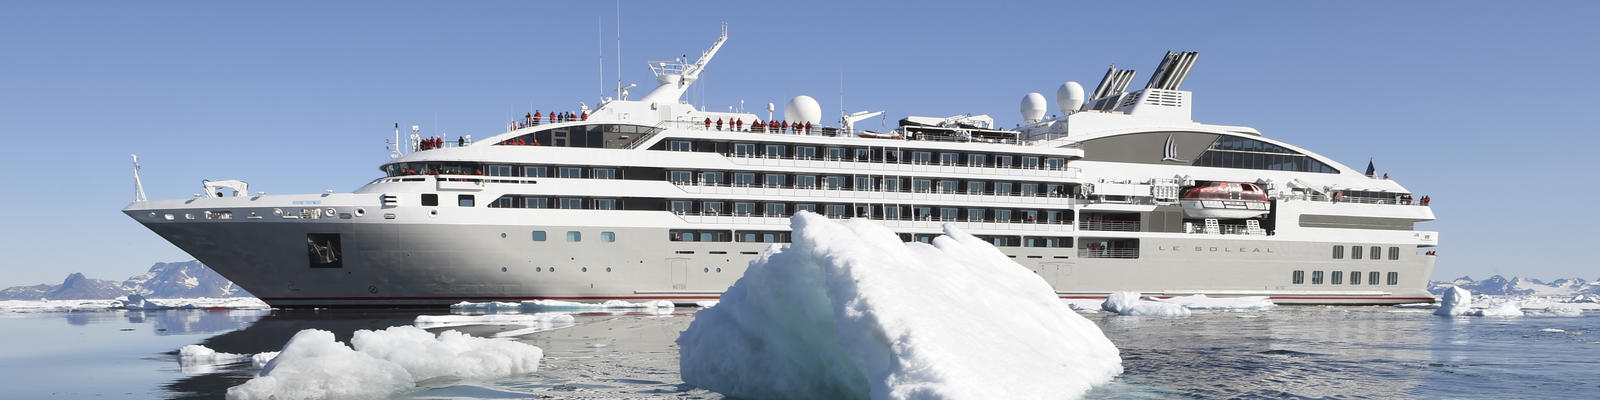 Ponant Le Soleal Cruise Ship Review Photos On Cruise Critic - Ponant cruises